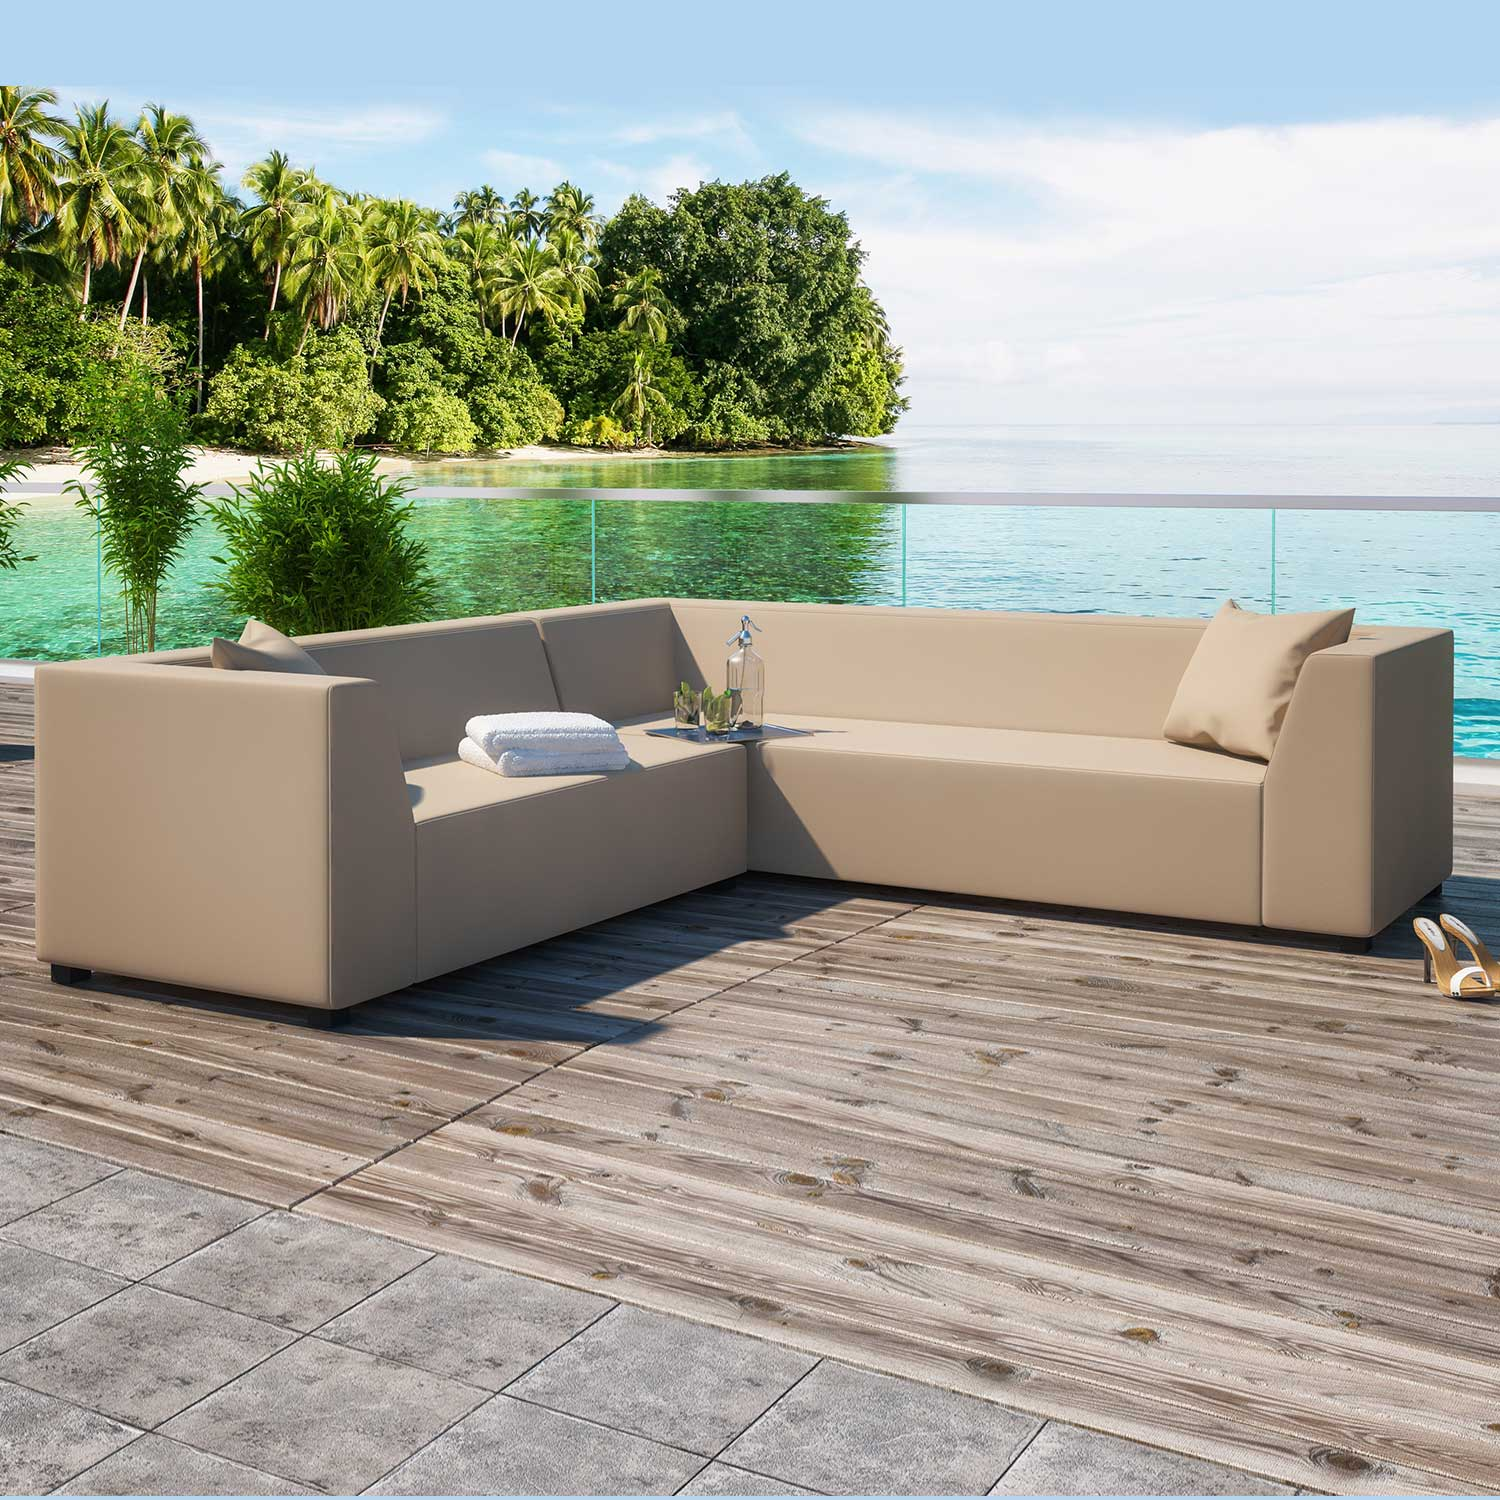 Alkmaar Beige 2 Piece Outdoor Garden Right Corner Sofa Collection